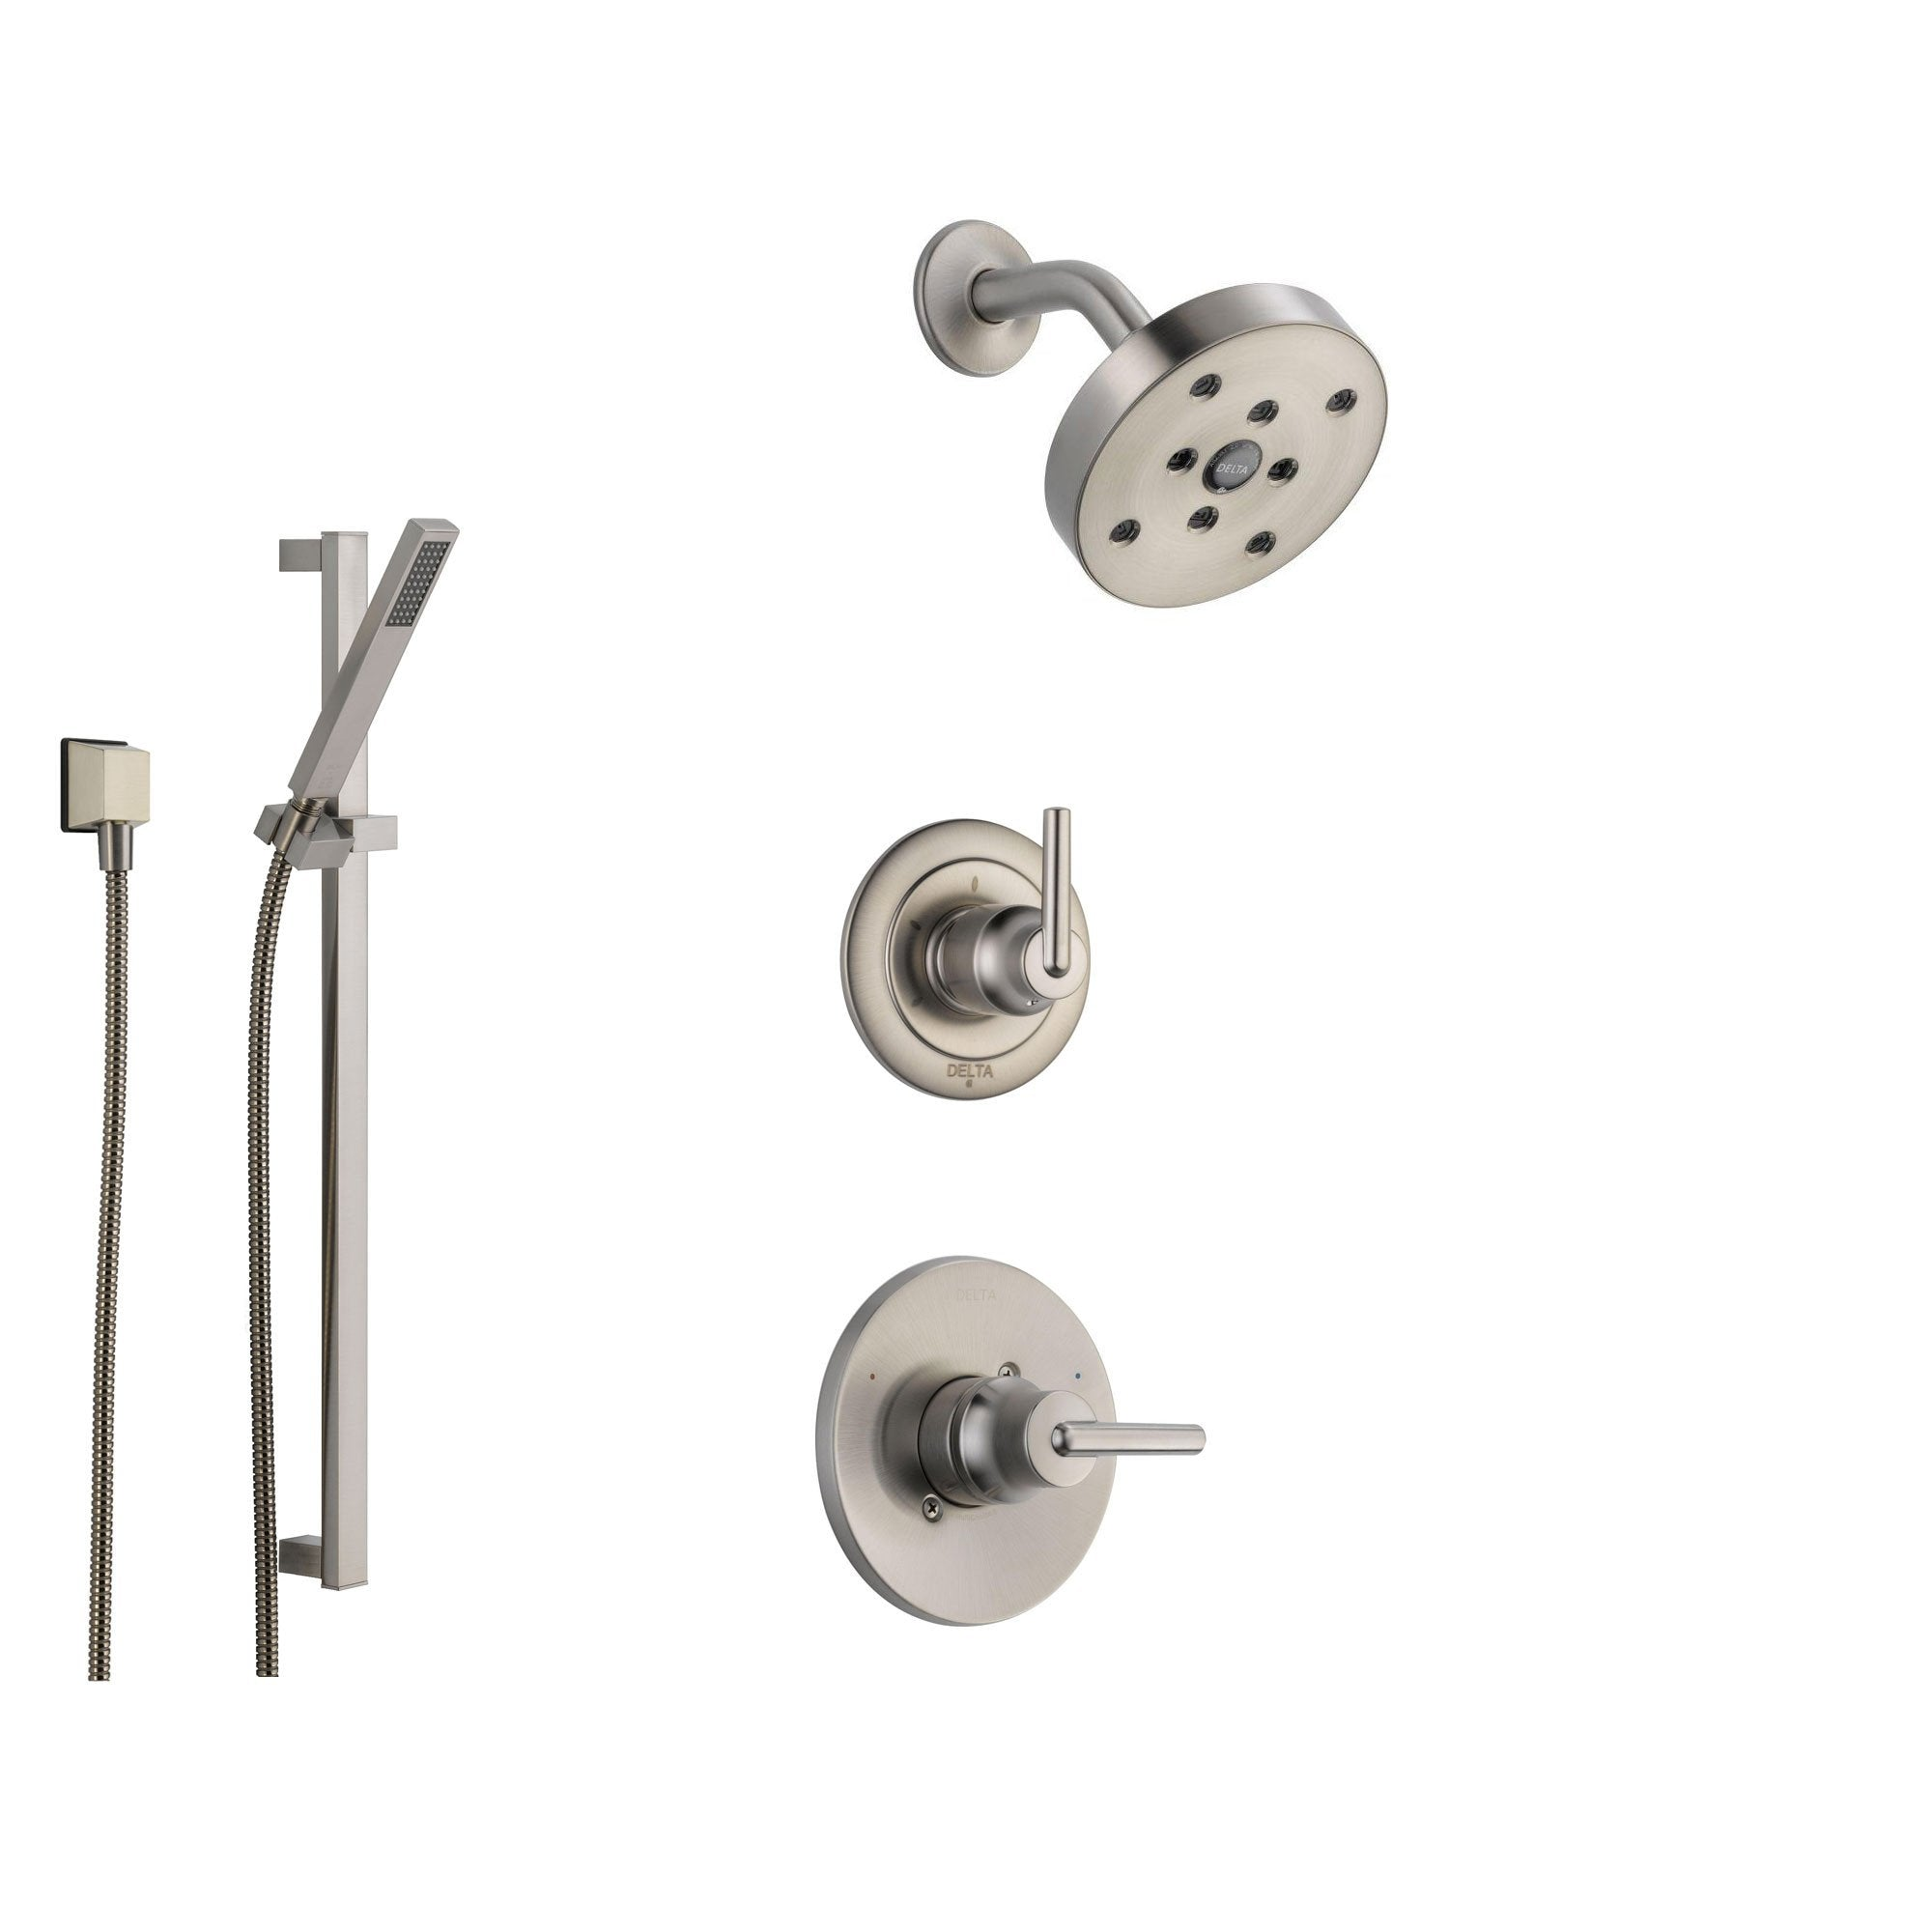 Delta Trinsic Stainless Steel Shower System with Normal Shower Handle, 3-setting Diverter, Modern Round Showerhead, and Handheld Shower Spray SS145981SS